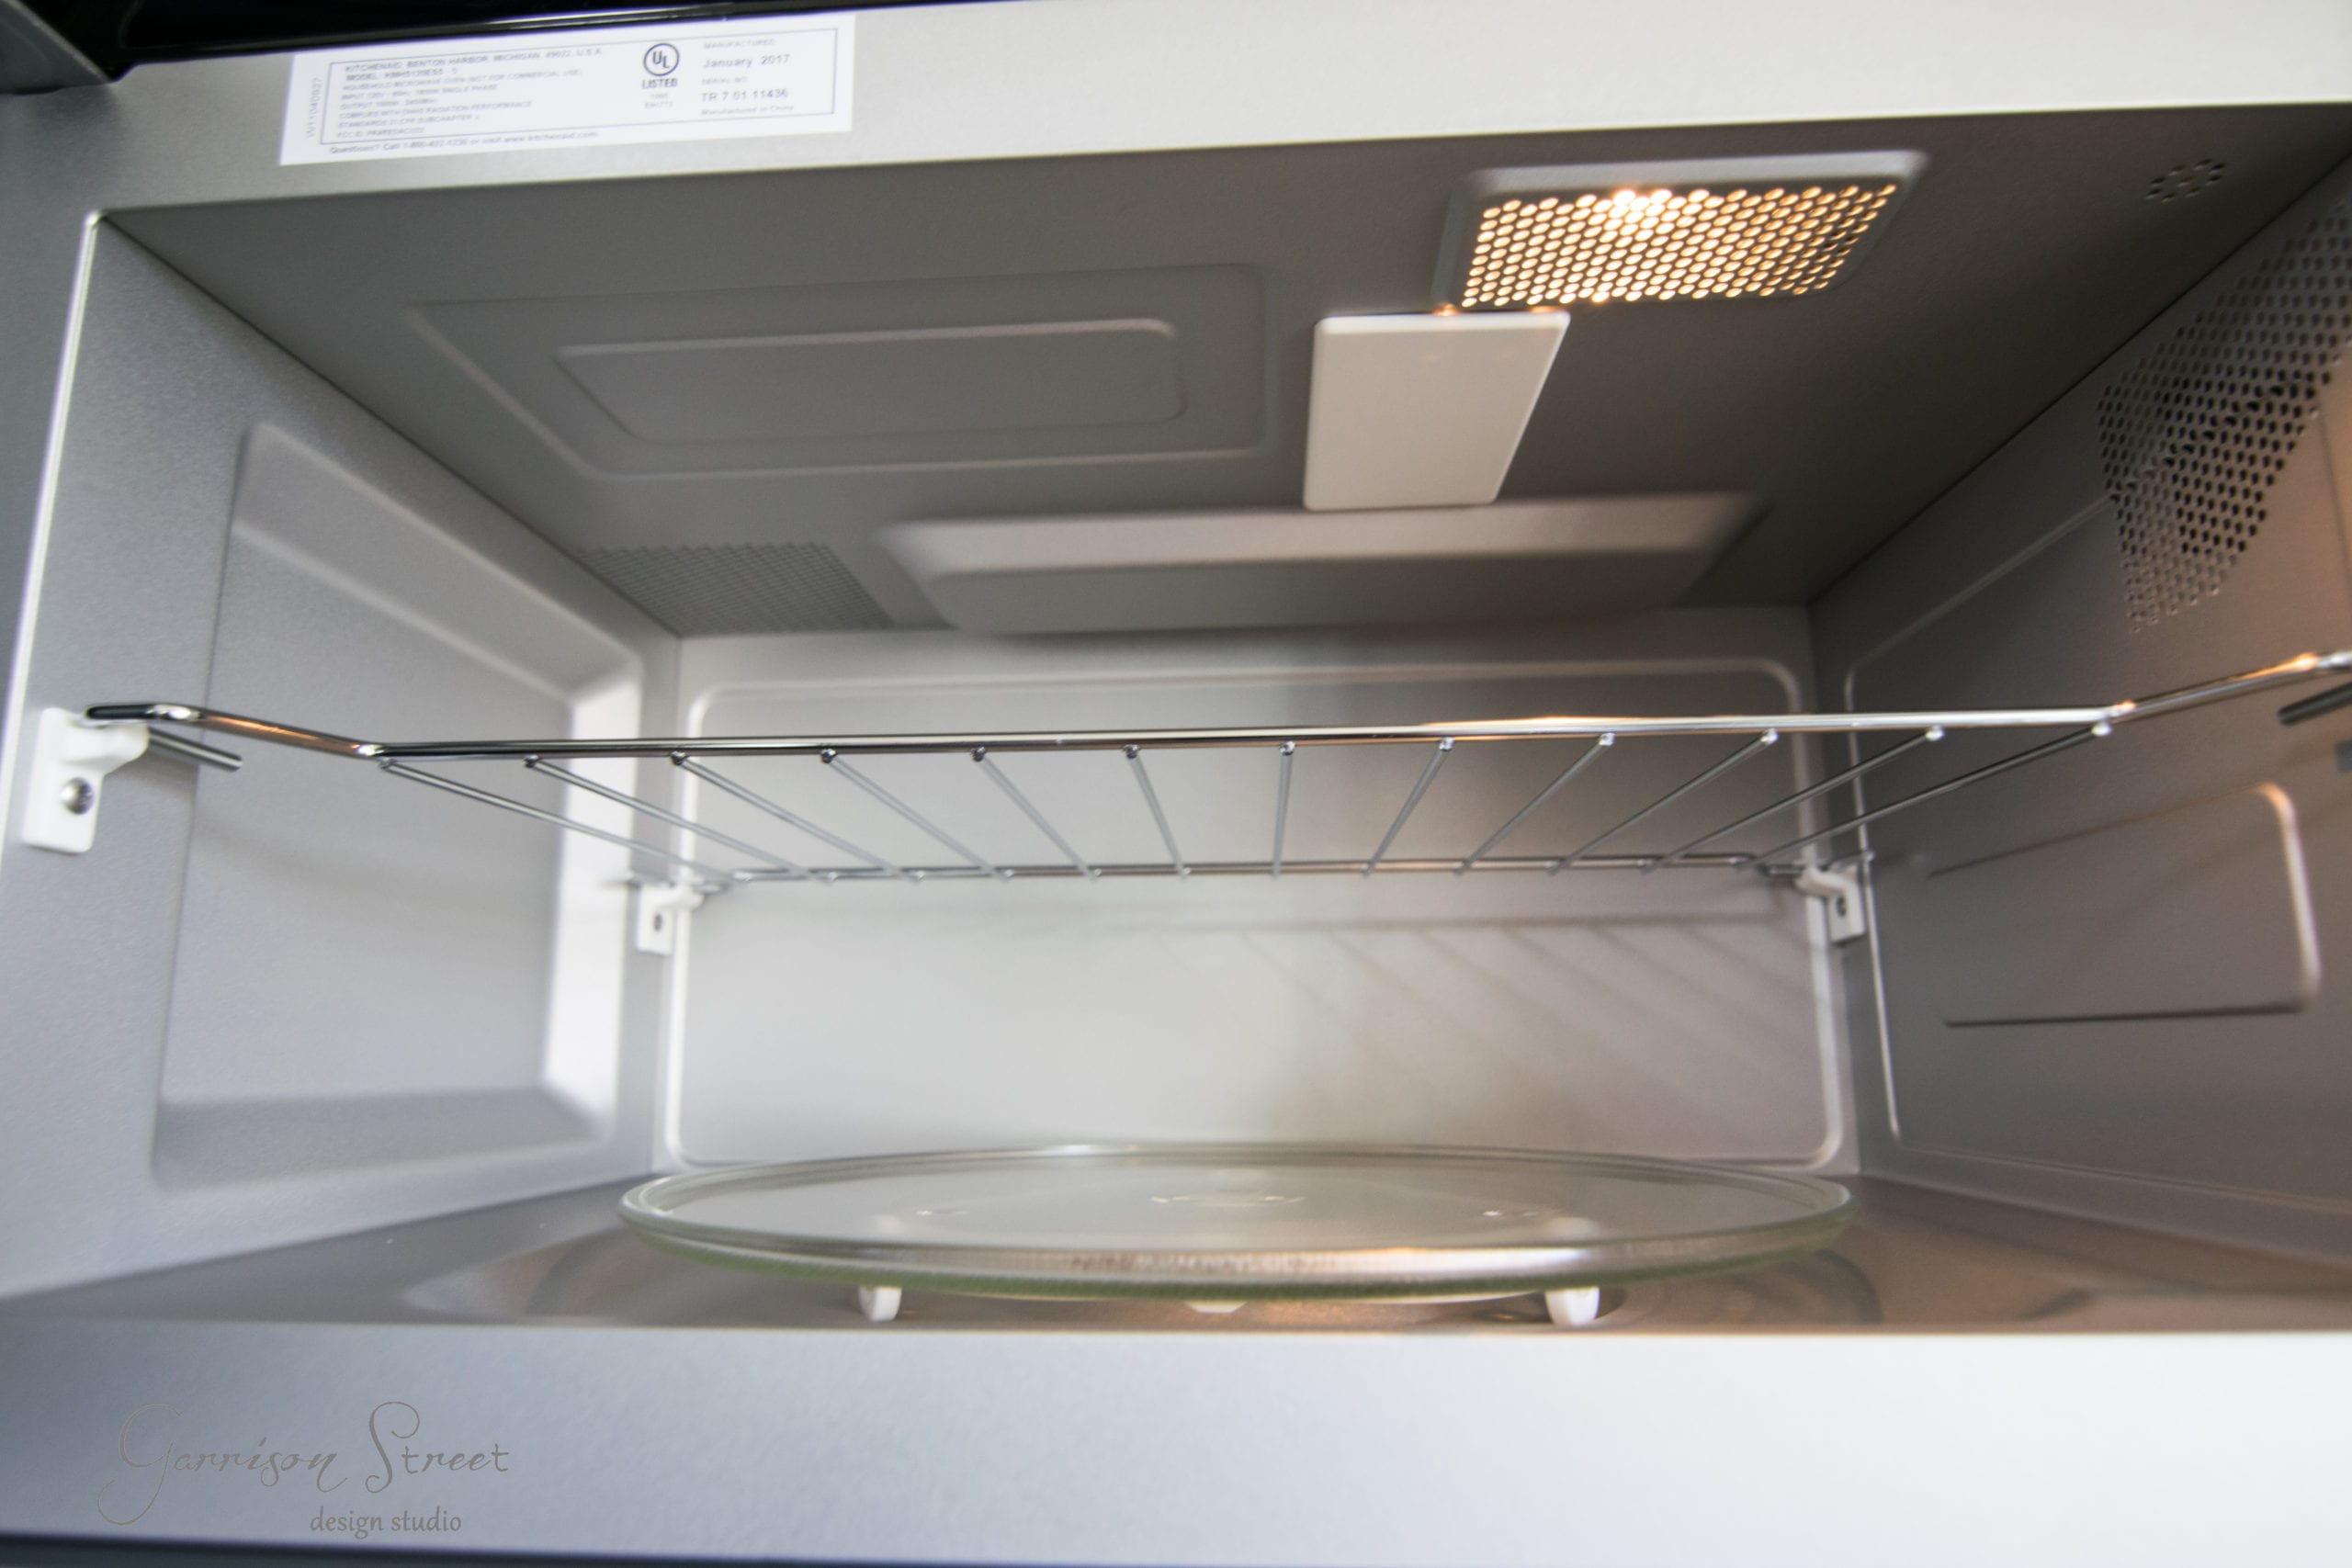 Installing A Sleek New Microwave & How We Chose It